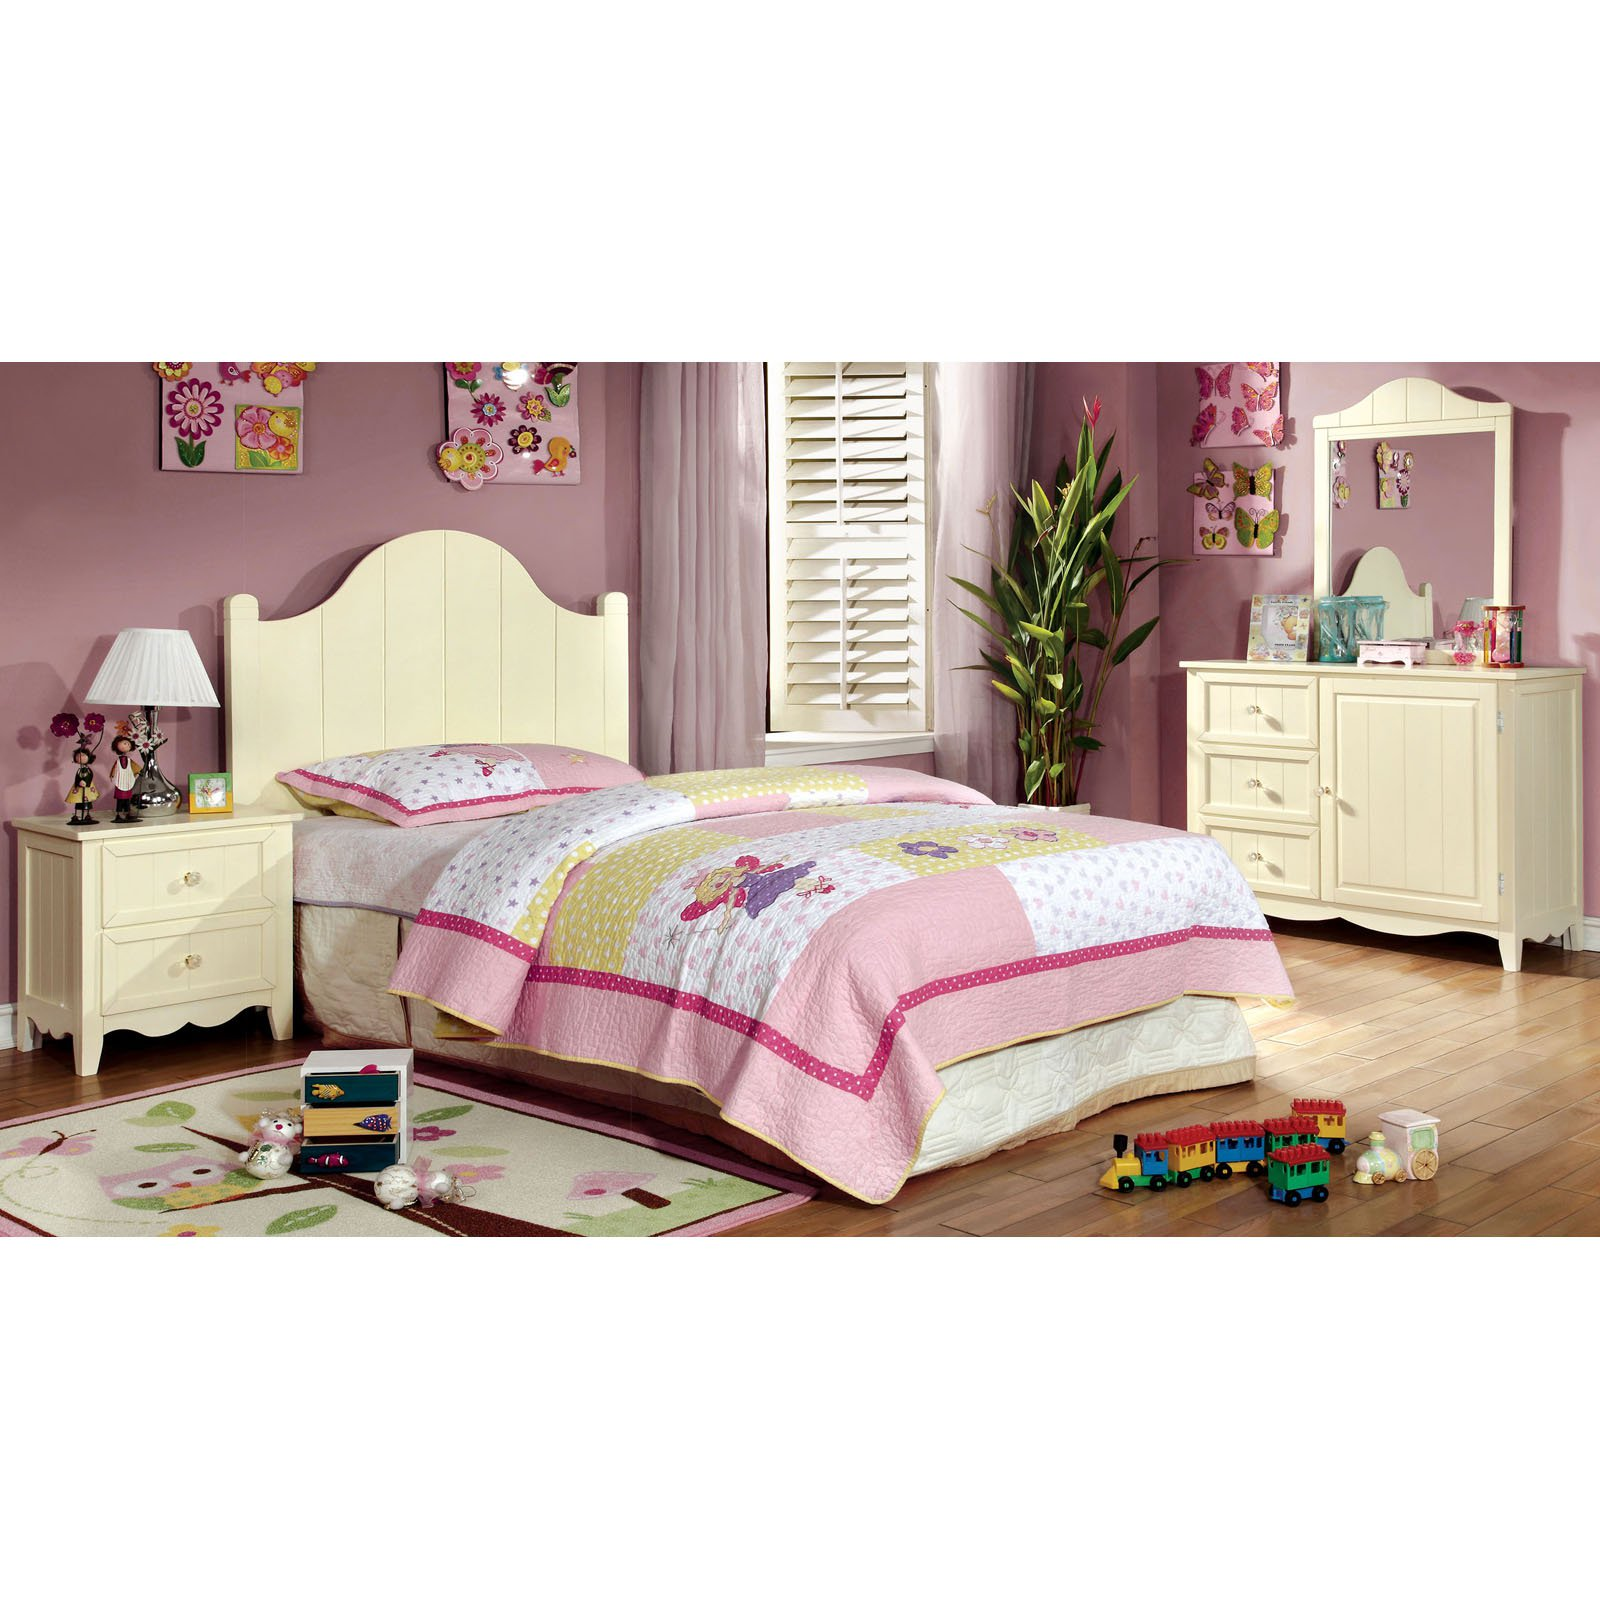 Furniture of America Brooklyn Collection 4-Piece Twin Bedroom Collection - Cream